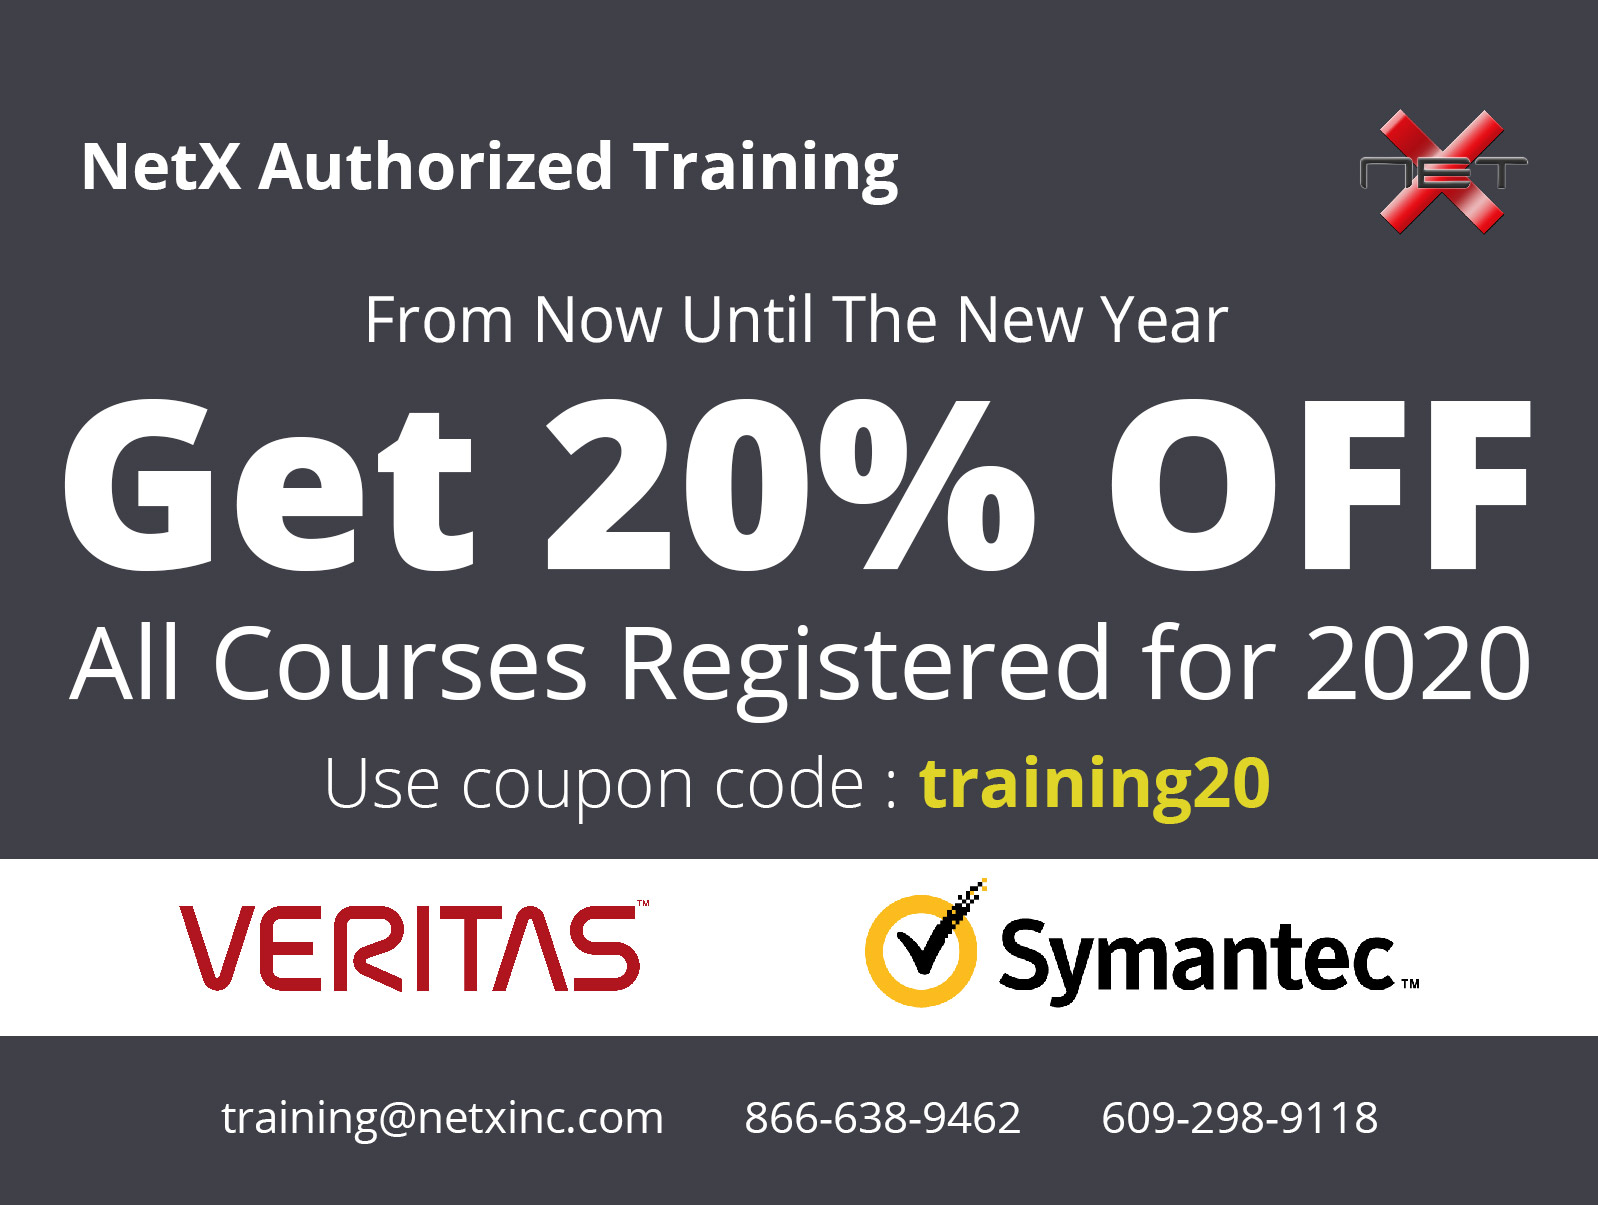 NetX 20% Discount End Of Year Veritas and Symantec Authorized Training Promo